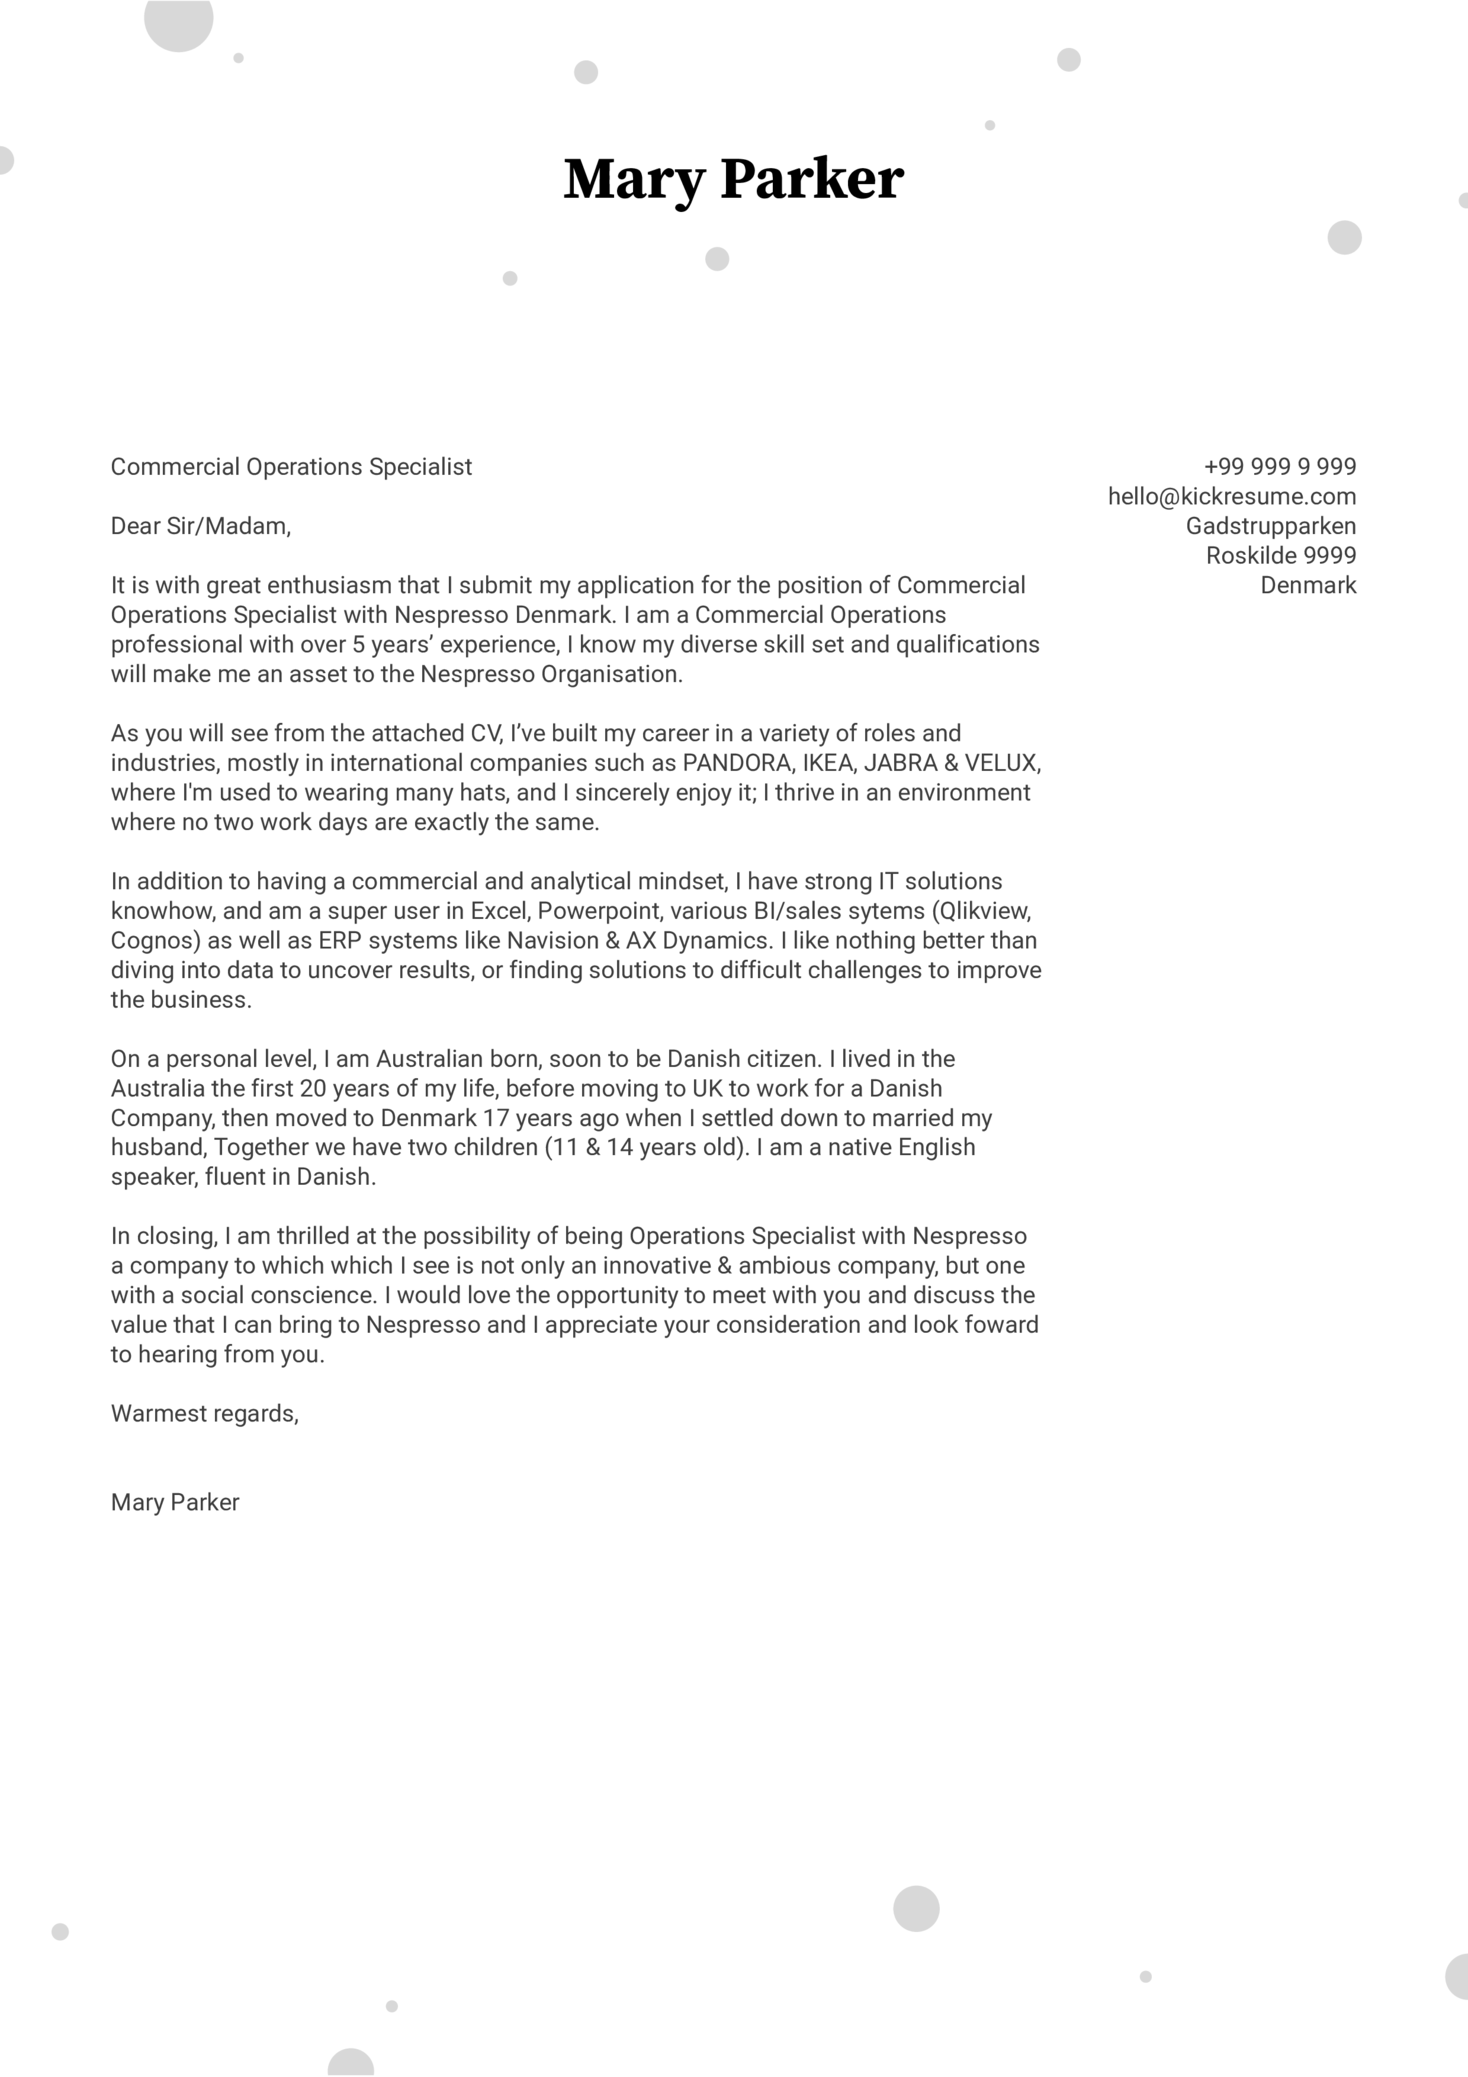 IKEA Ecommerce Operations Manager Cover Letter